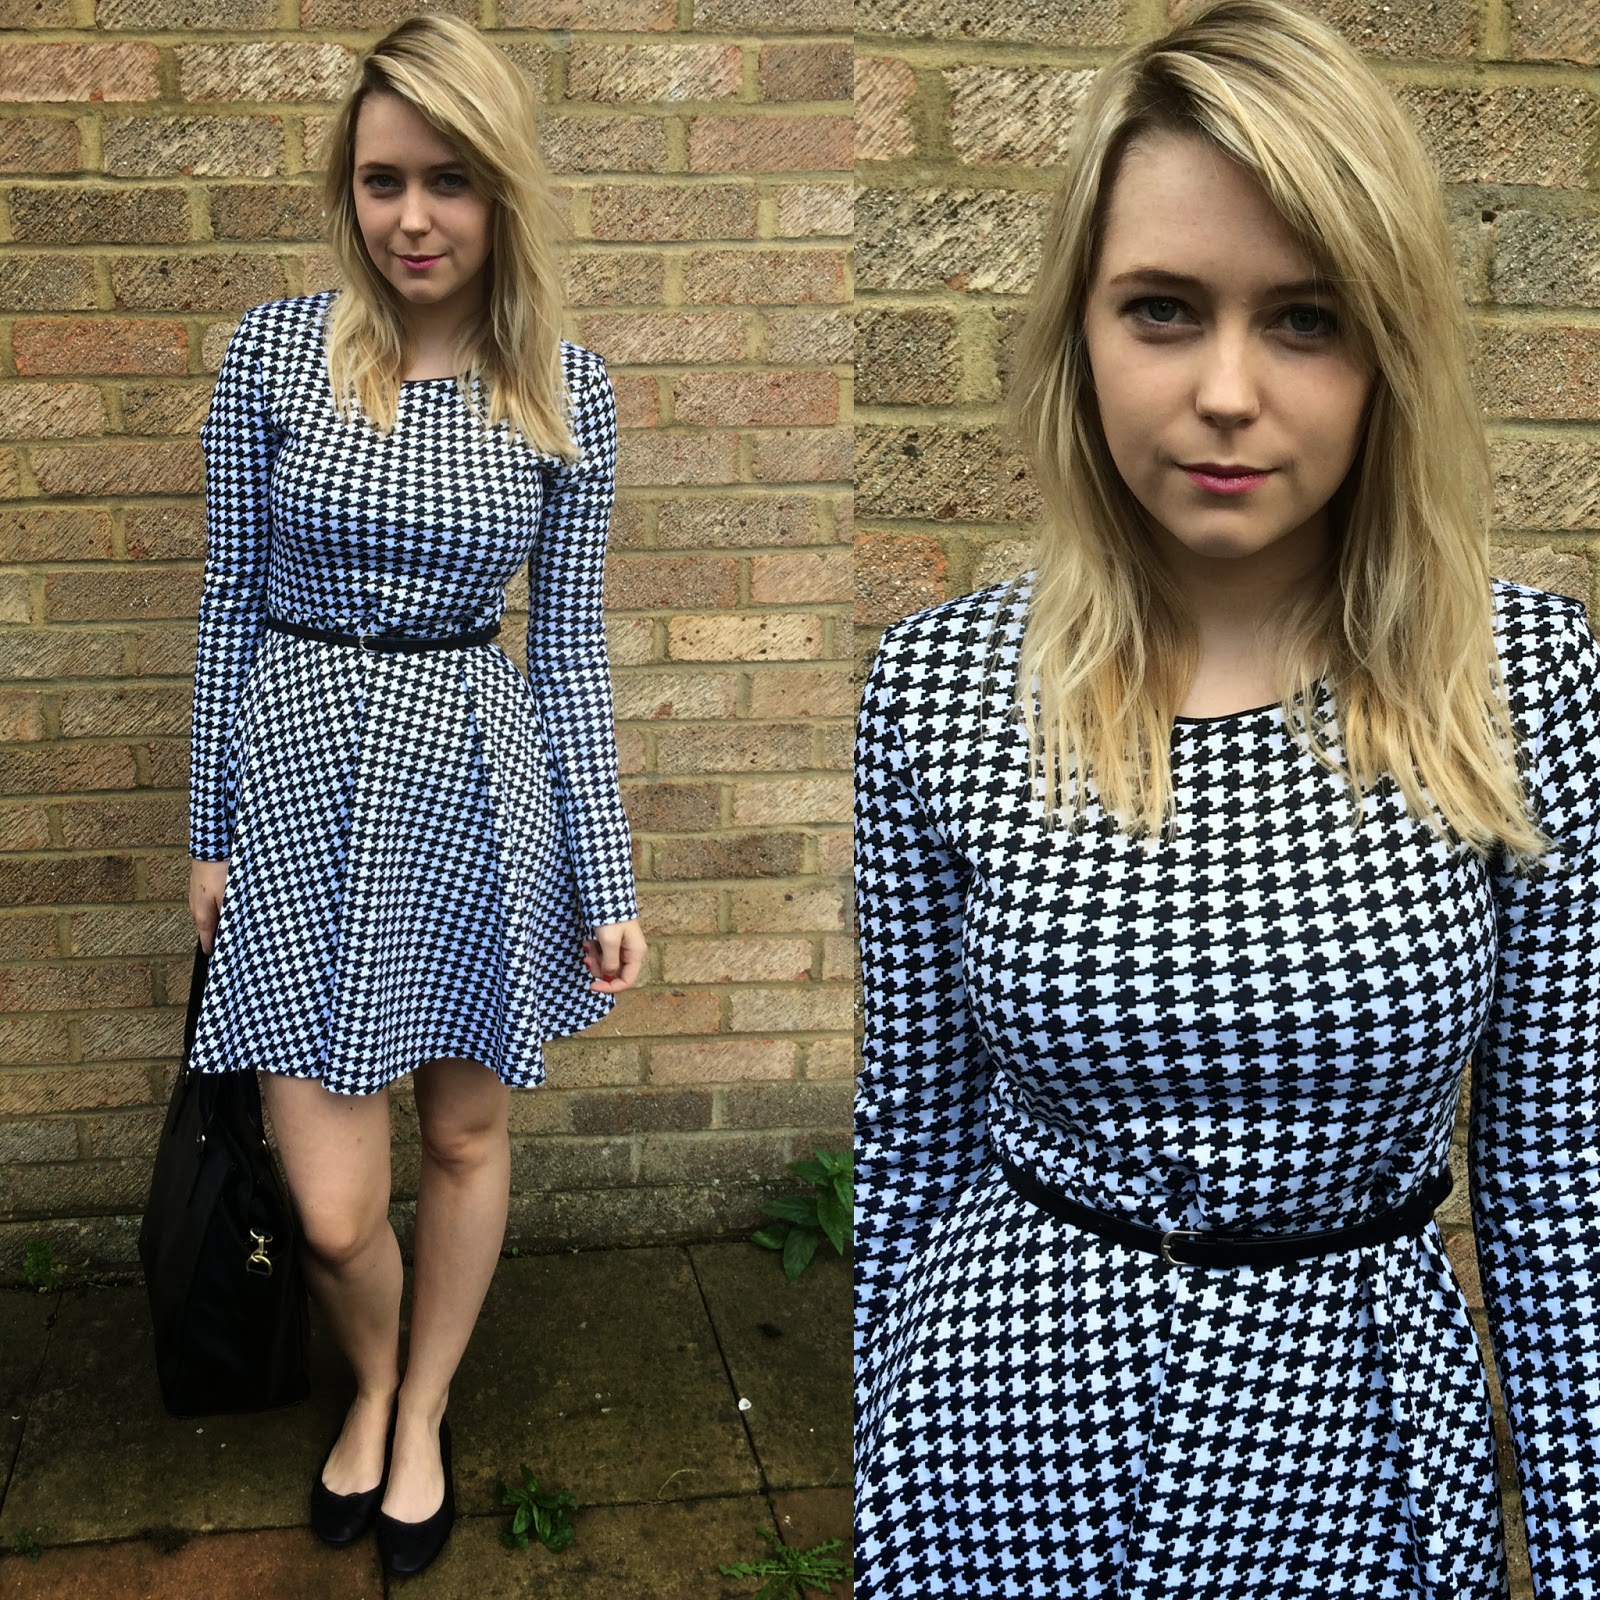 Dogtooth outfit post on laurarebeccasmith fashion blog